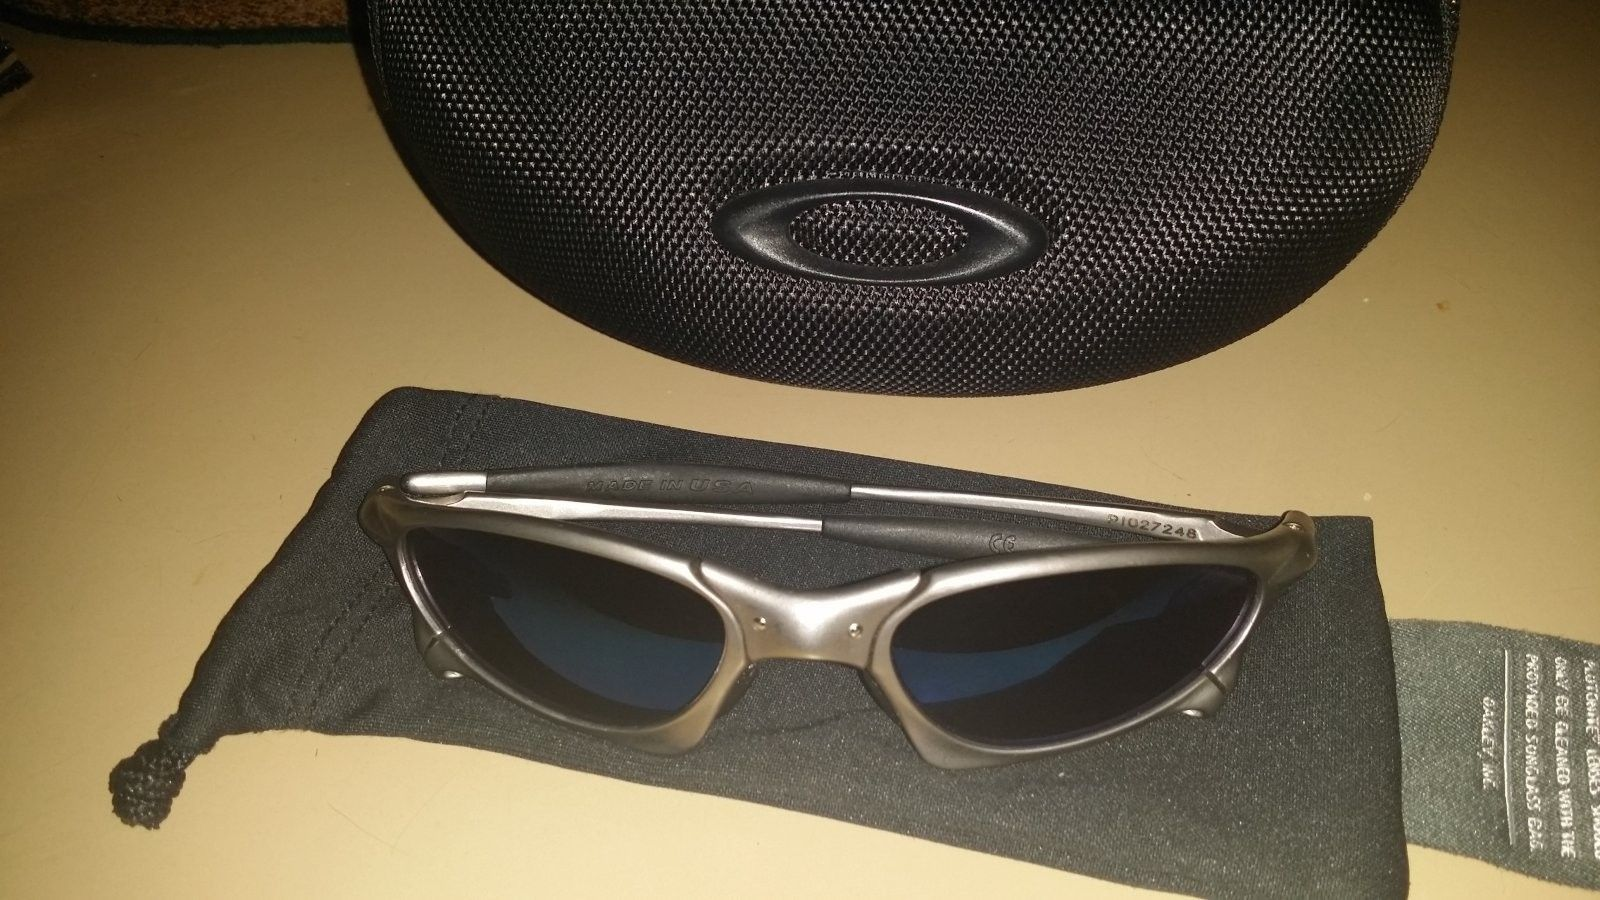 Ti Pennys Serial, With Blue Ice Lenses - 20140619_213403.jpg